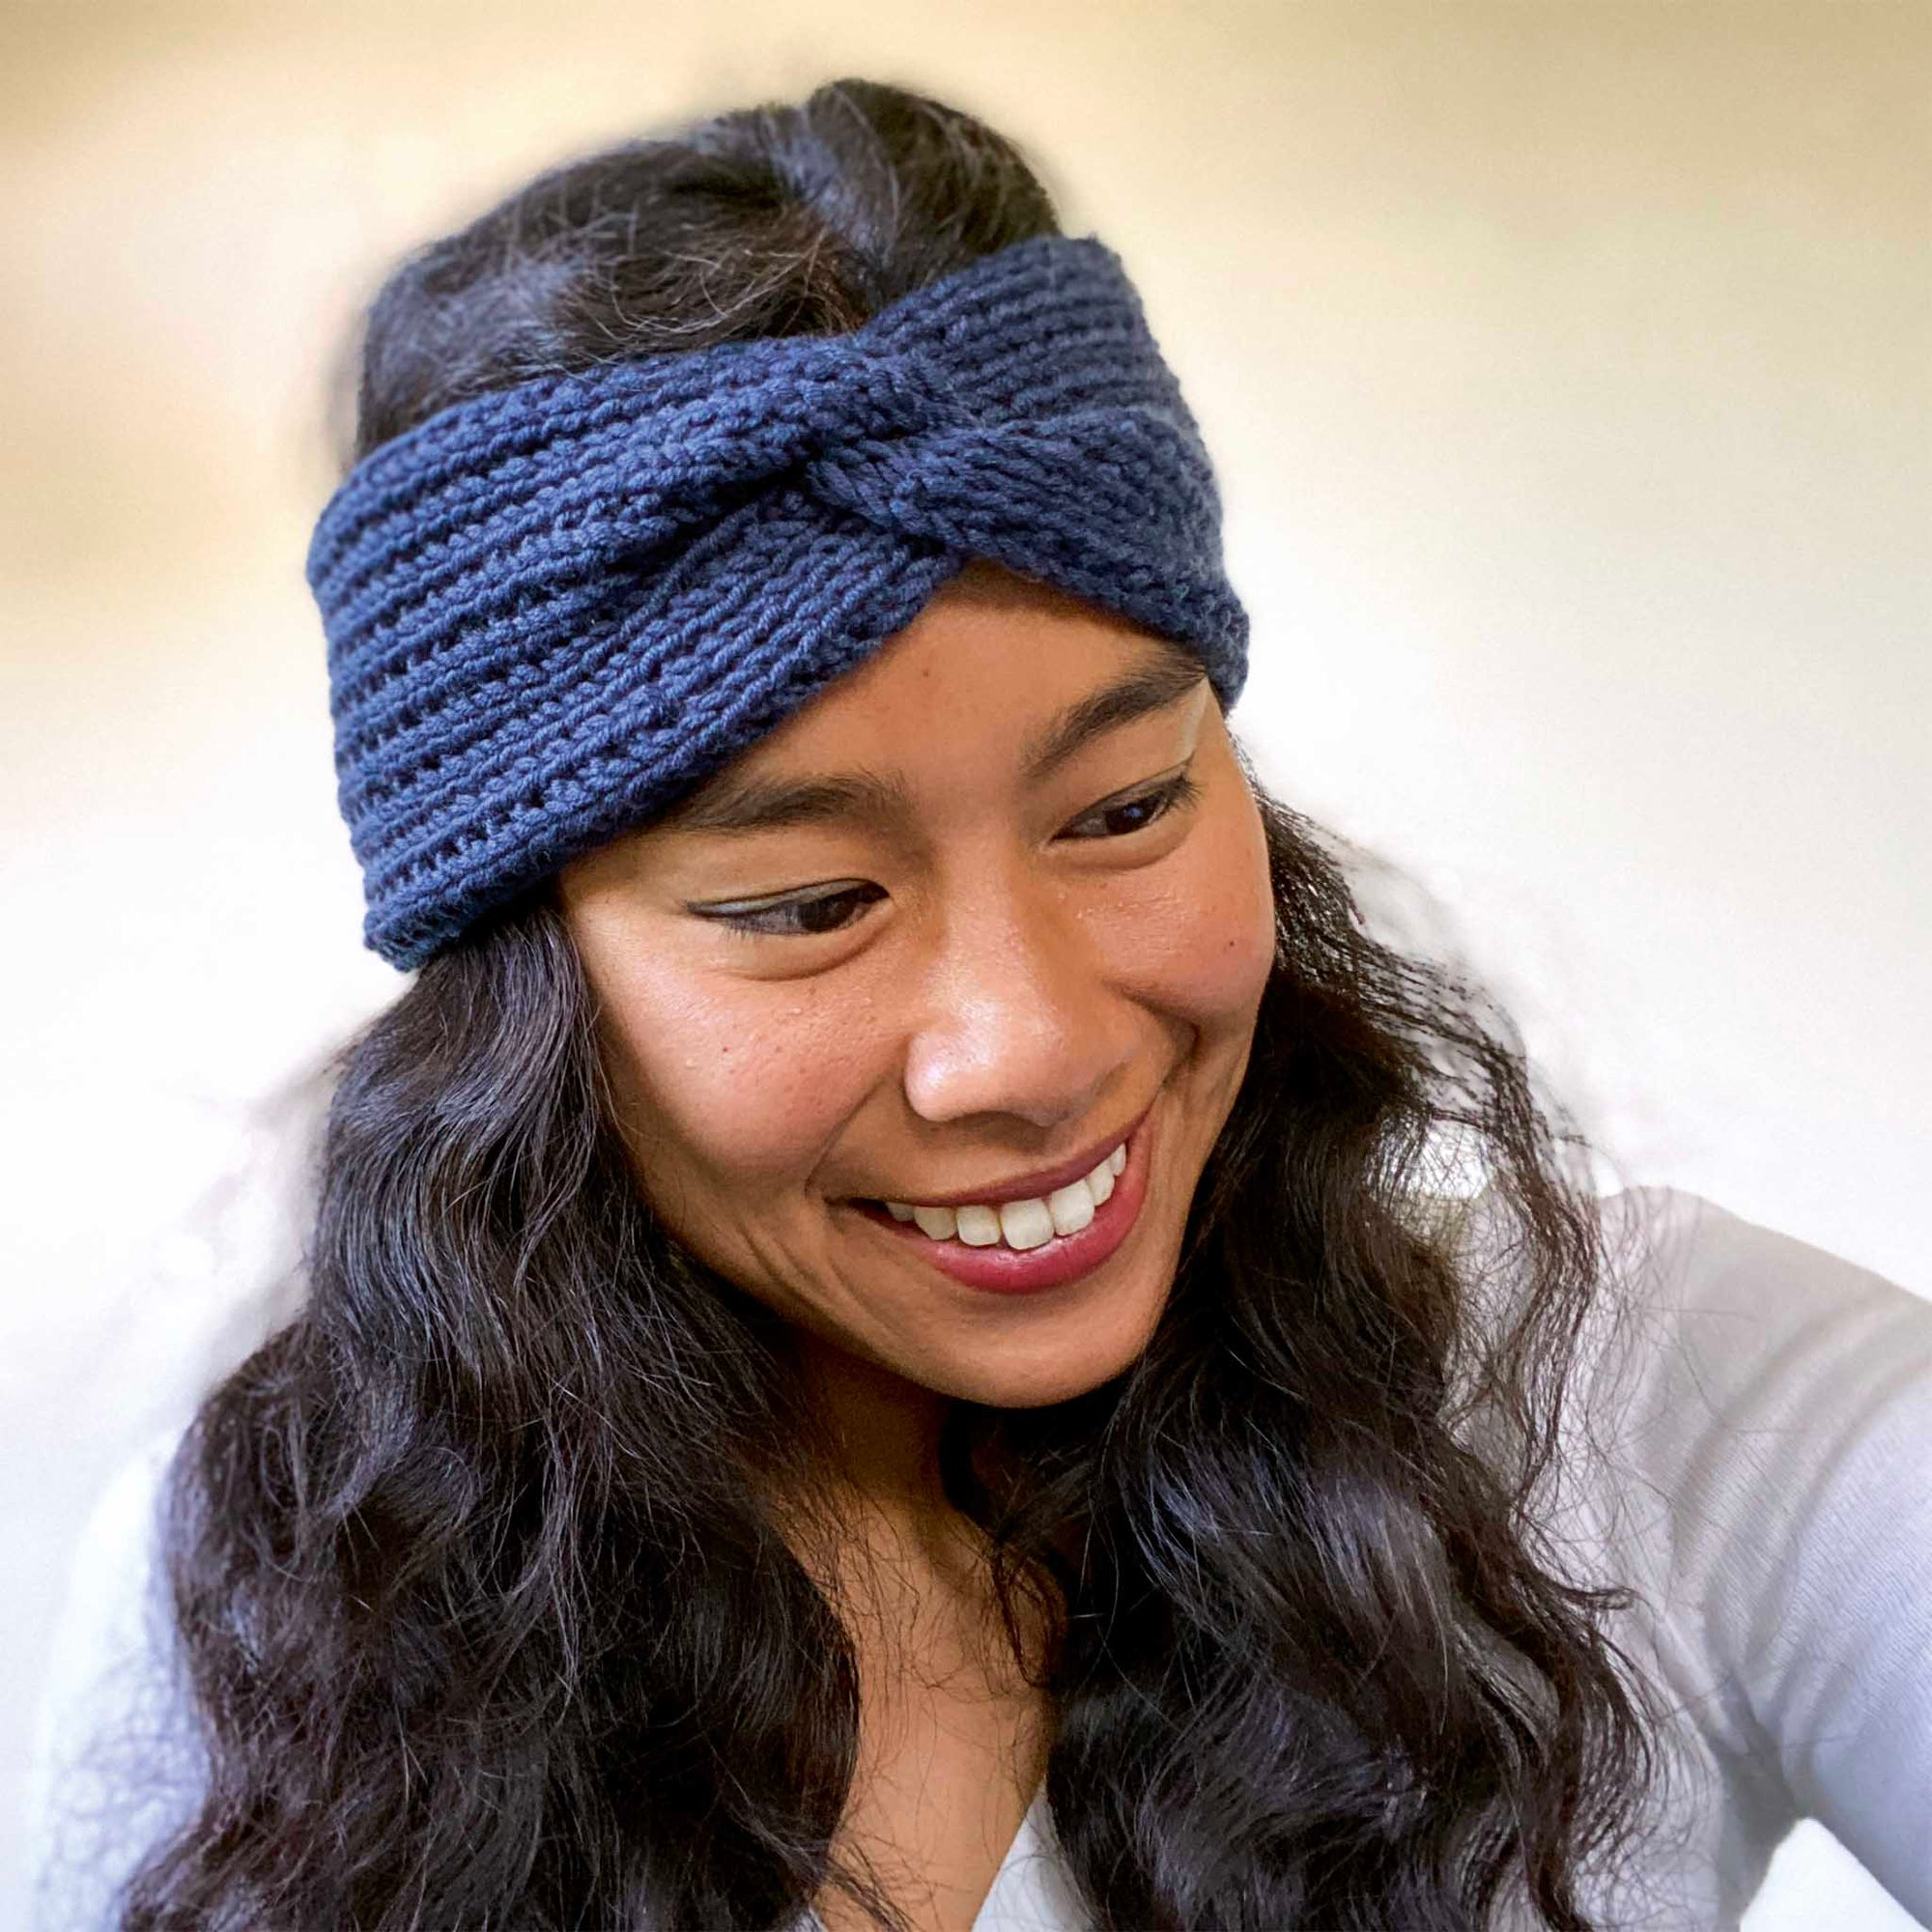 XOXO Headband Knitting Kit